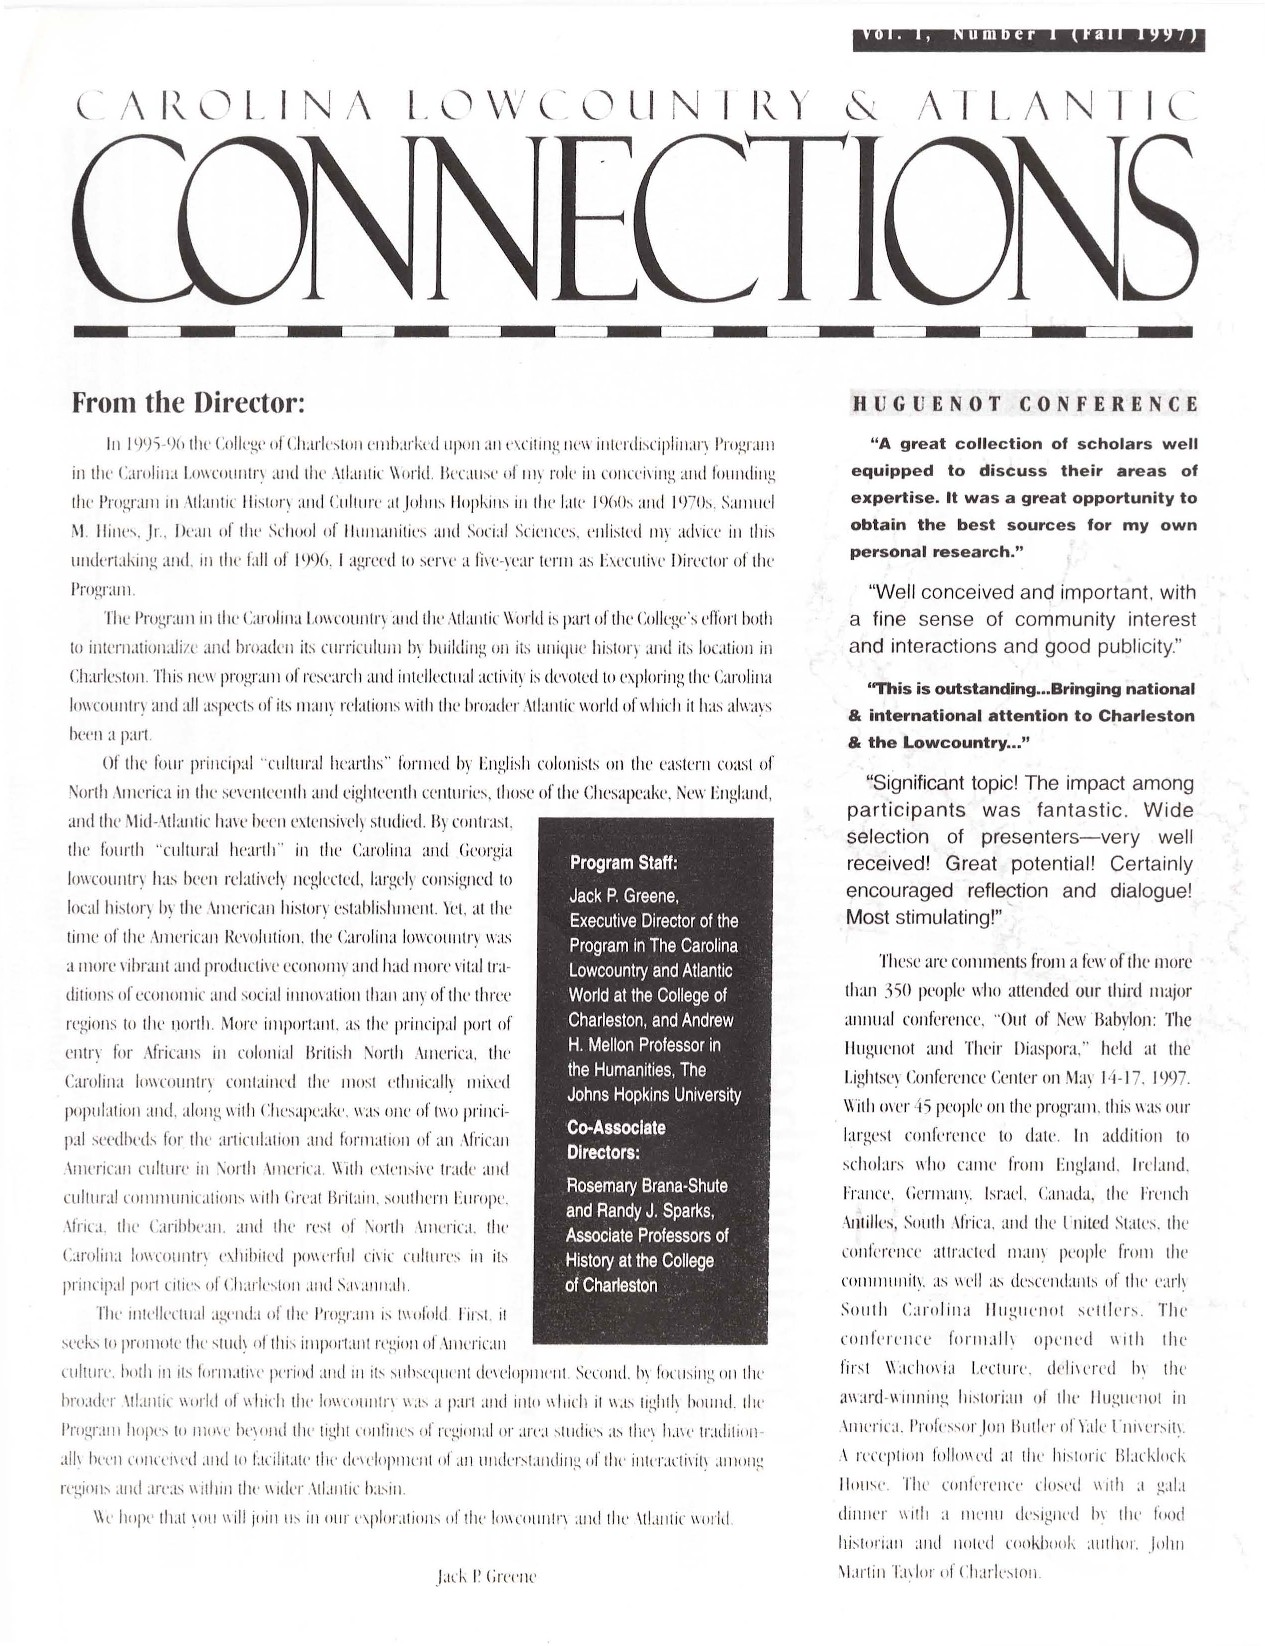 CLAW Newsletter Volume 01, Number 1